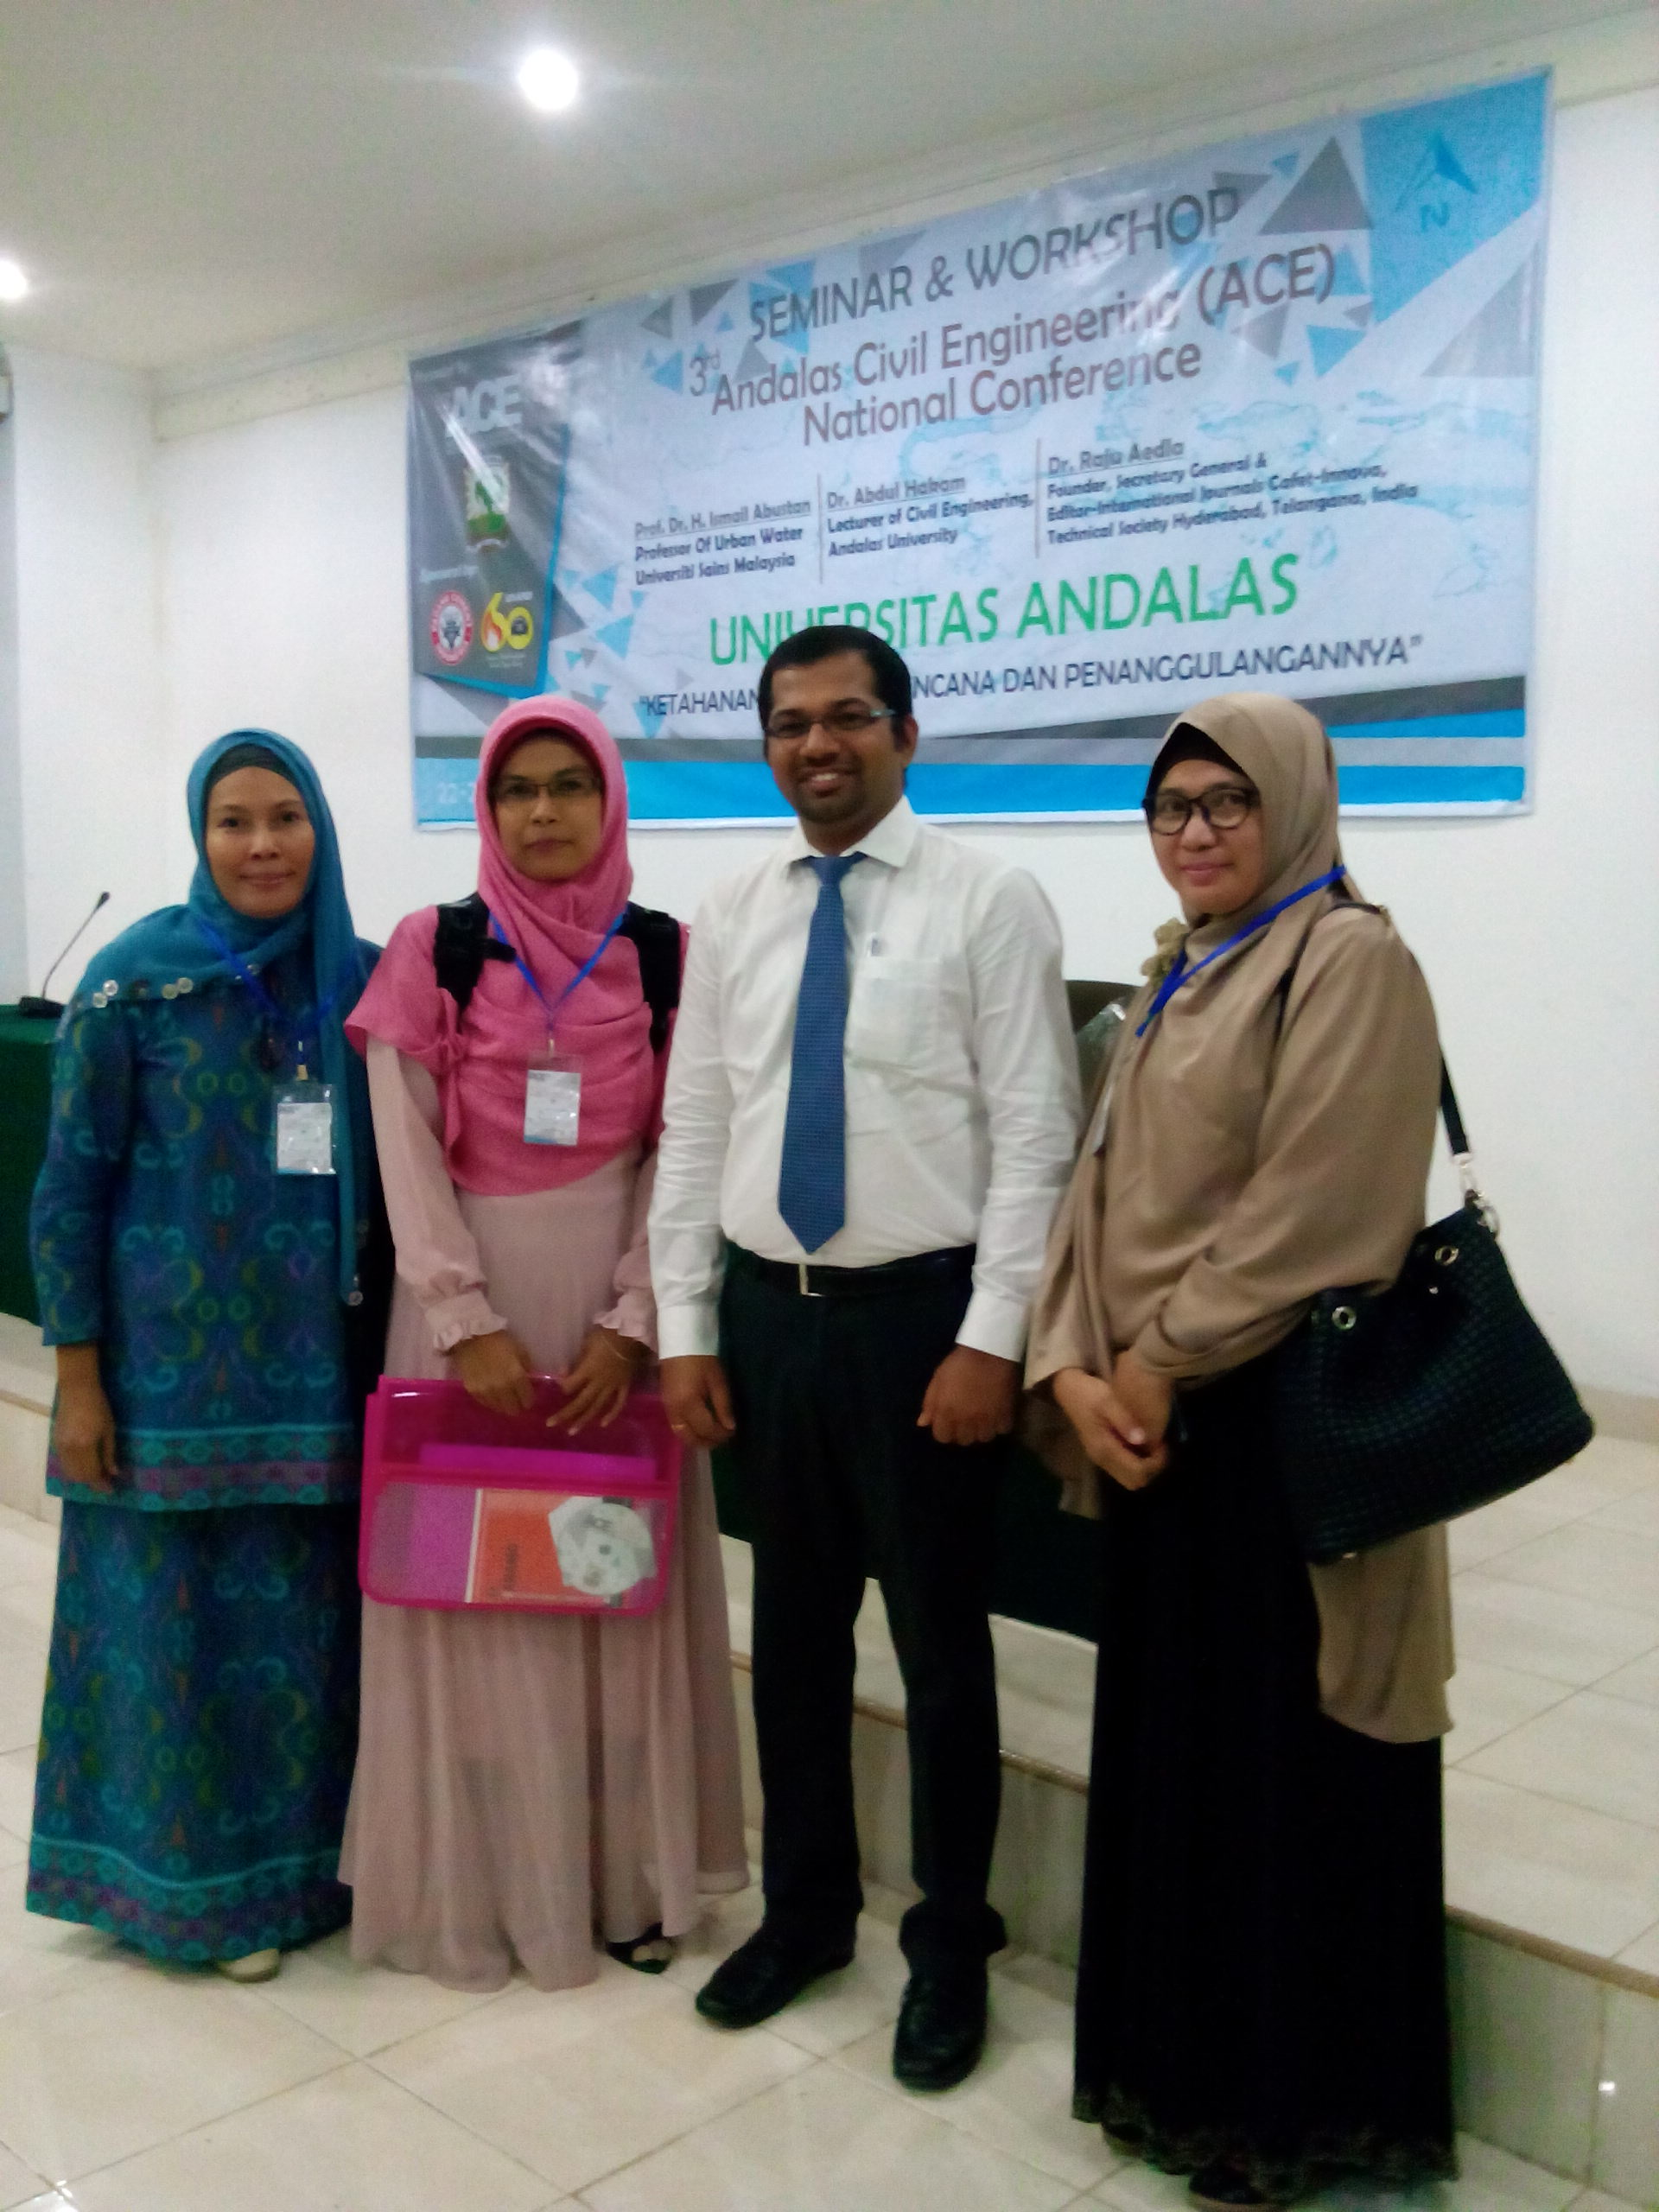 3rd Andalas Civil Engineering (ACE) National Conference